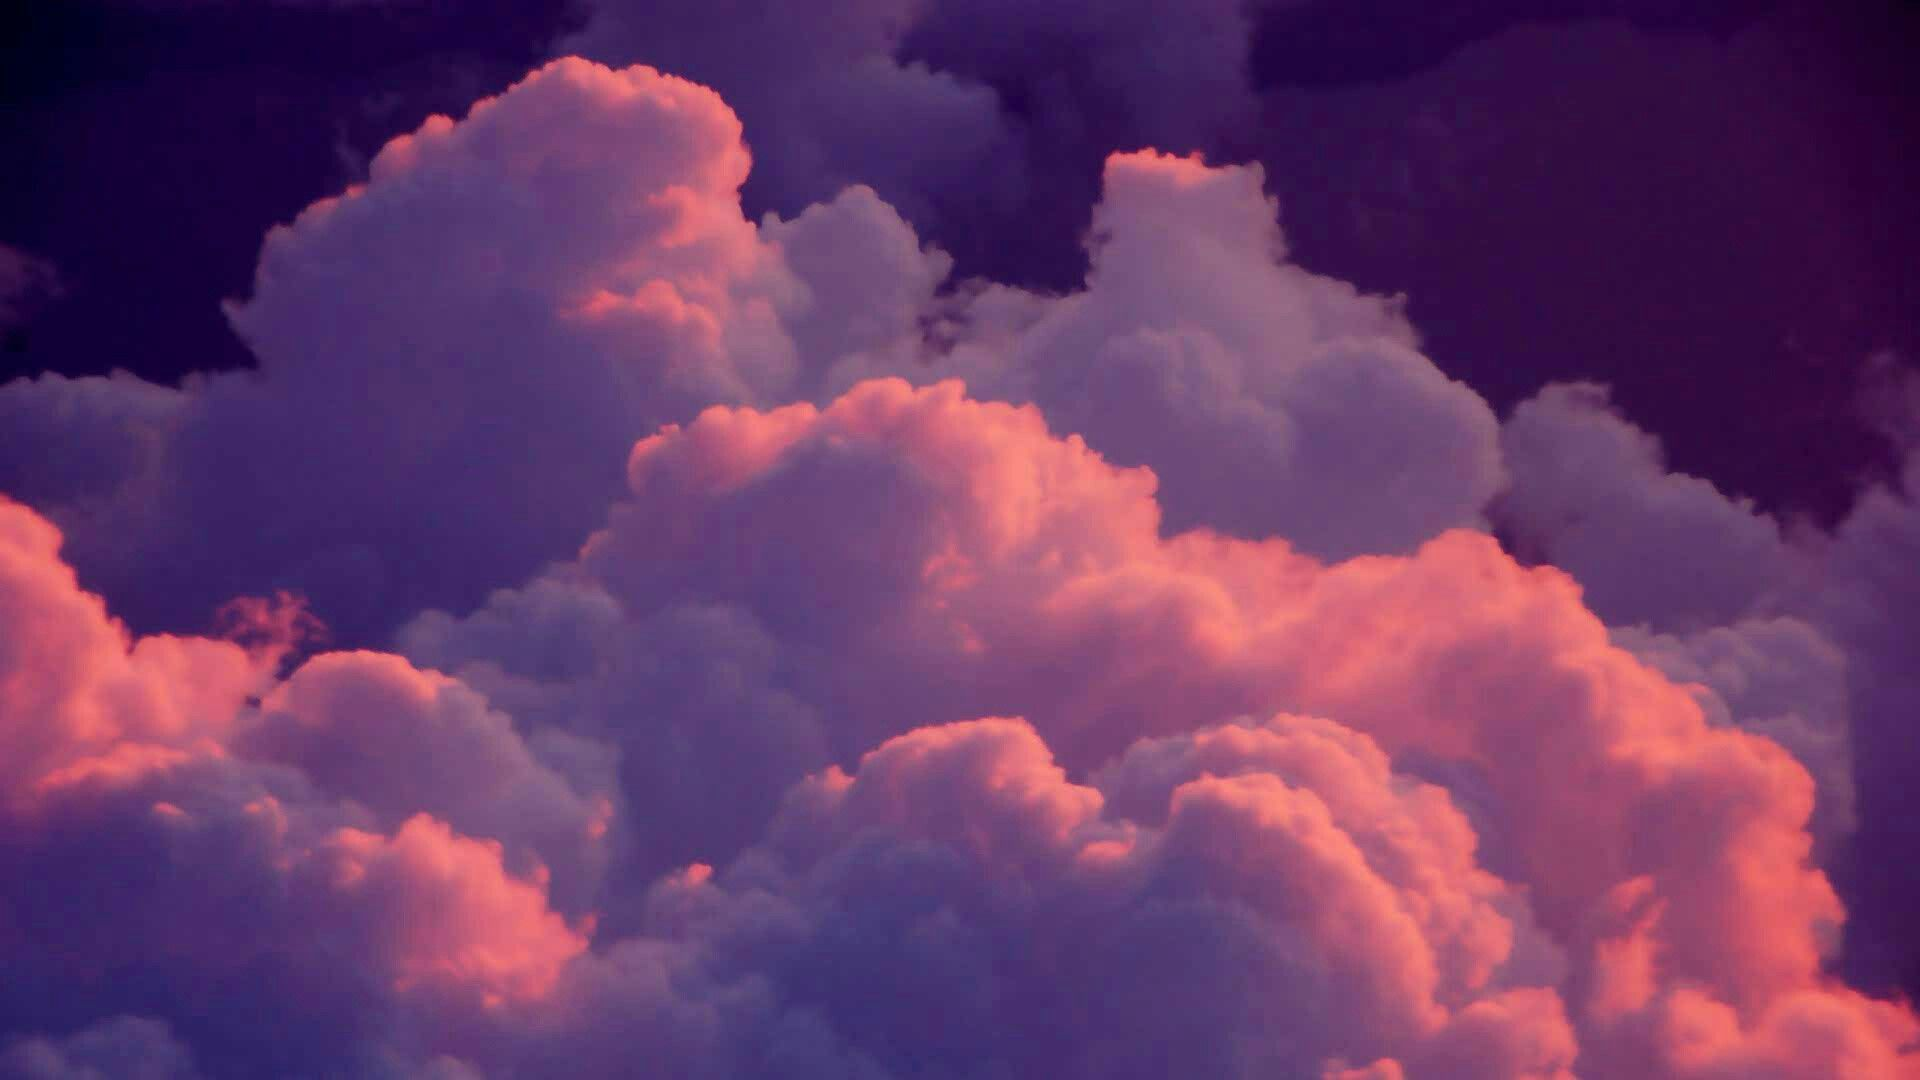 Image by Laura Matthews on clouds Cloud wallpaper, Pink